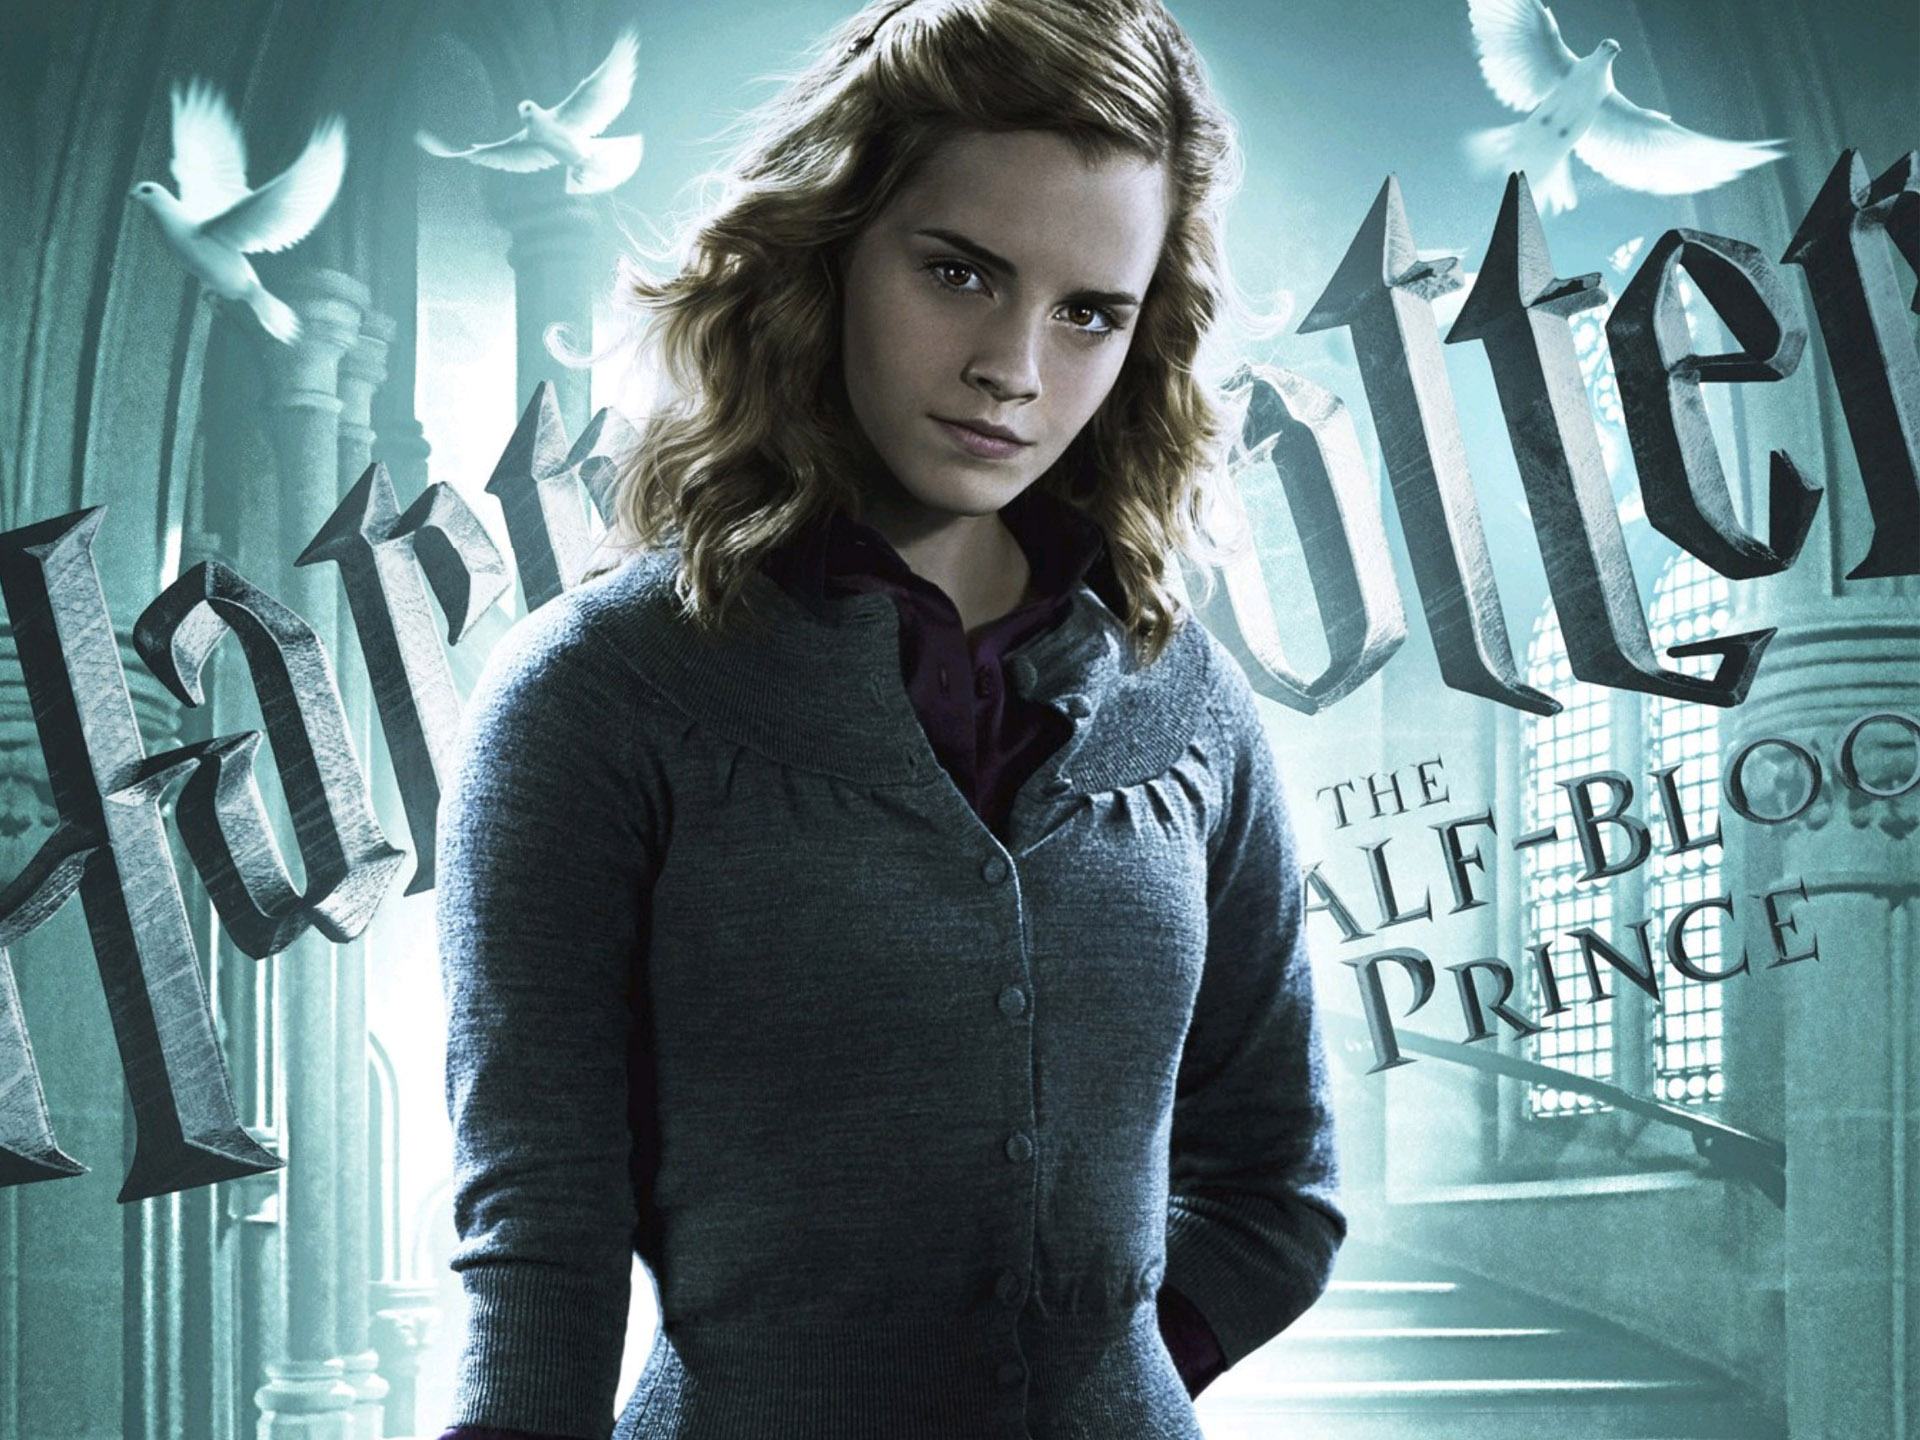 Emma Watson in Half Blood Prince 1406.7 Kb